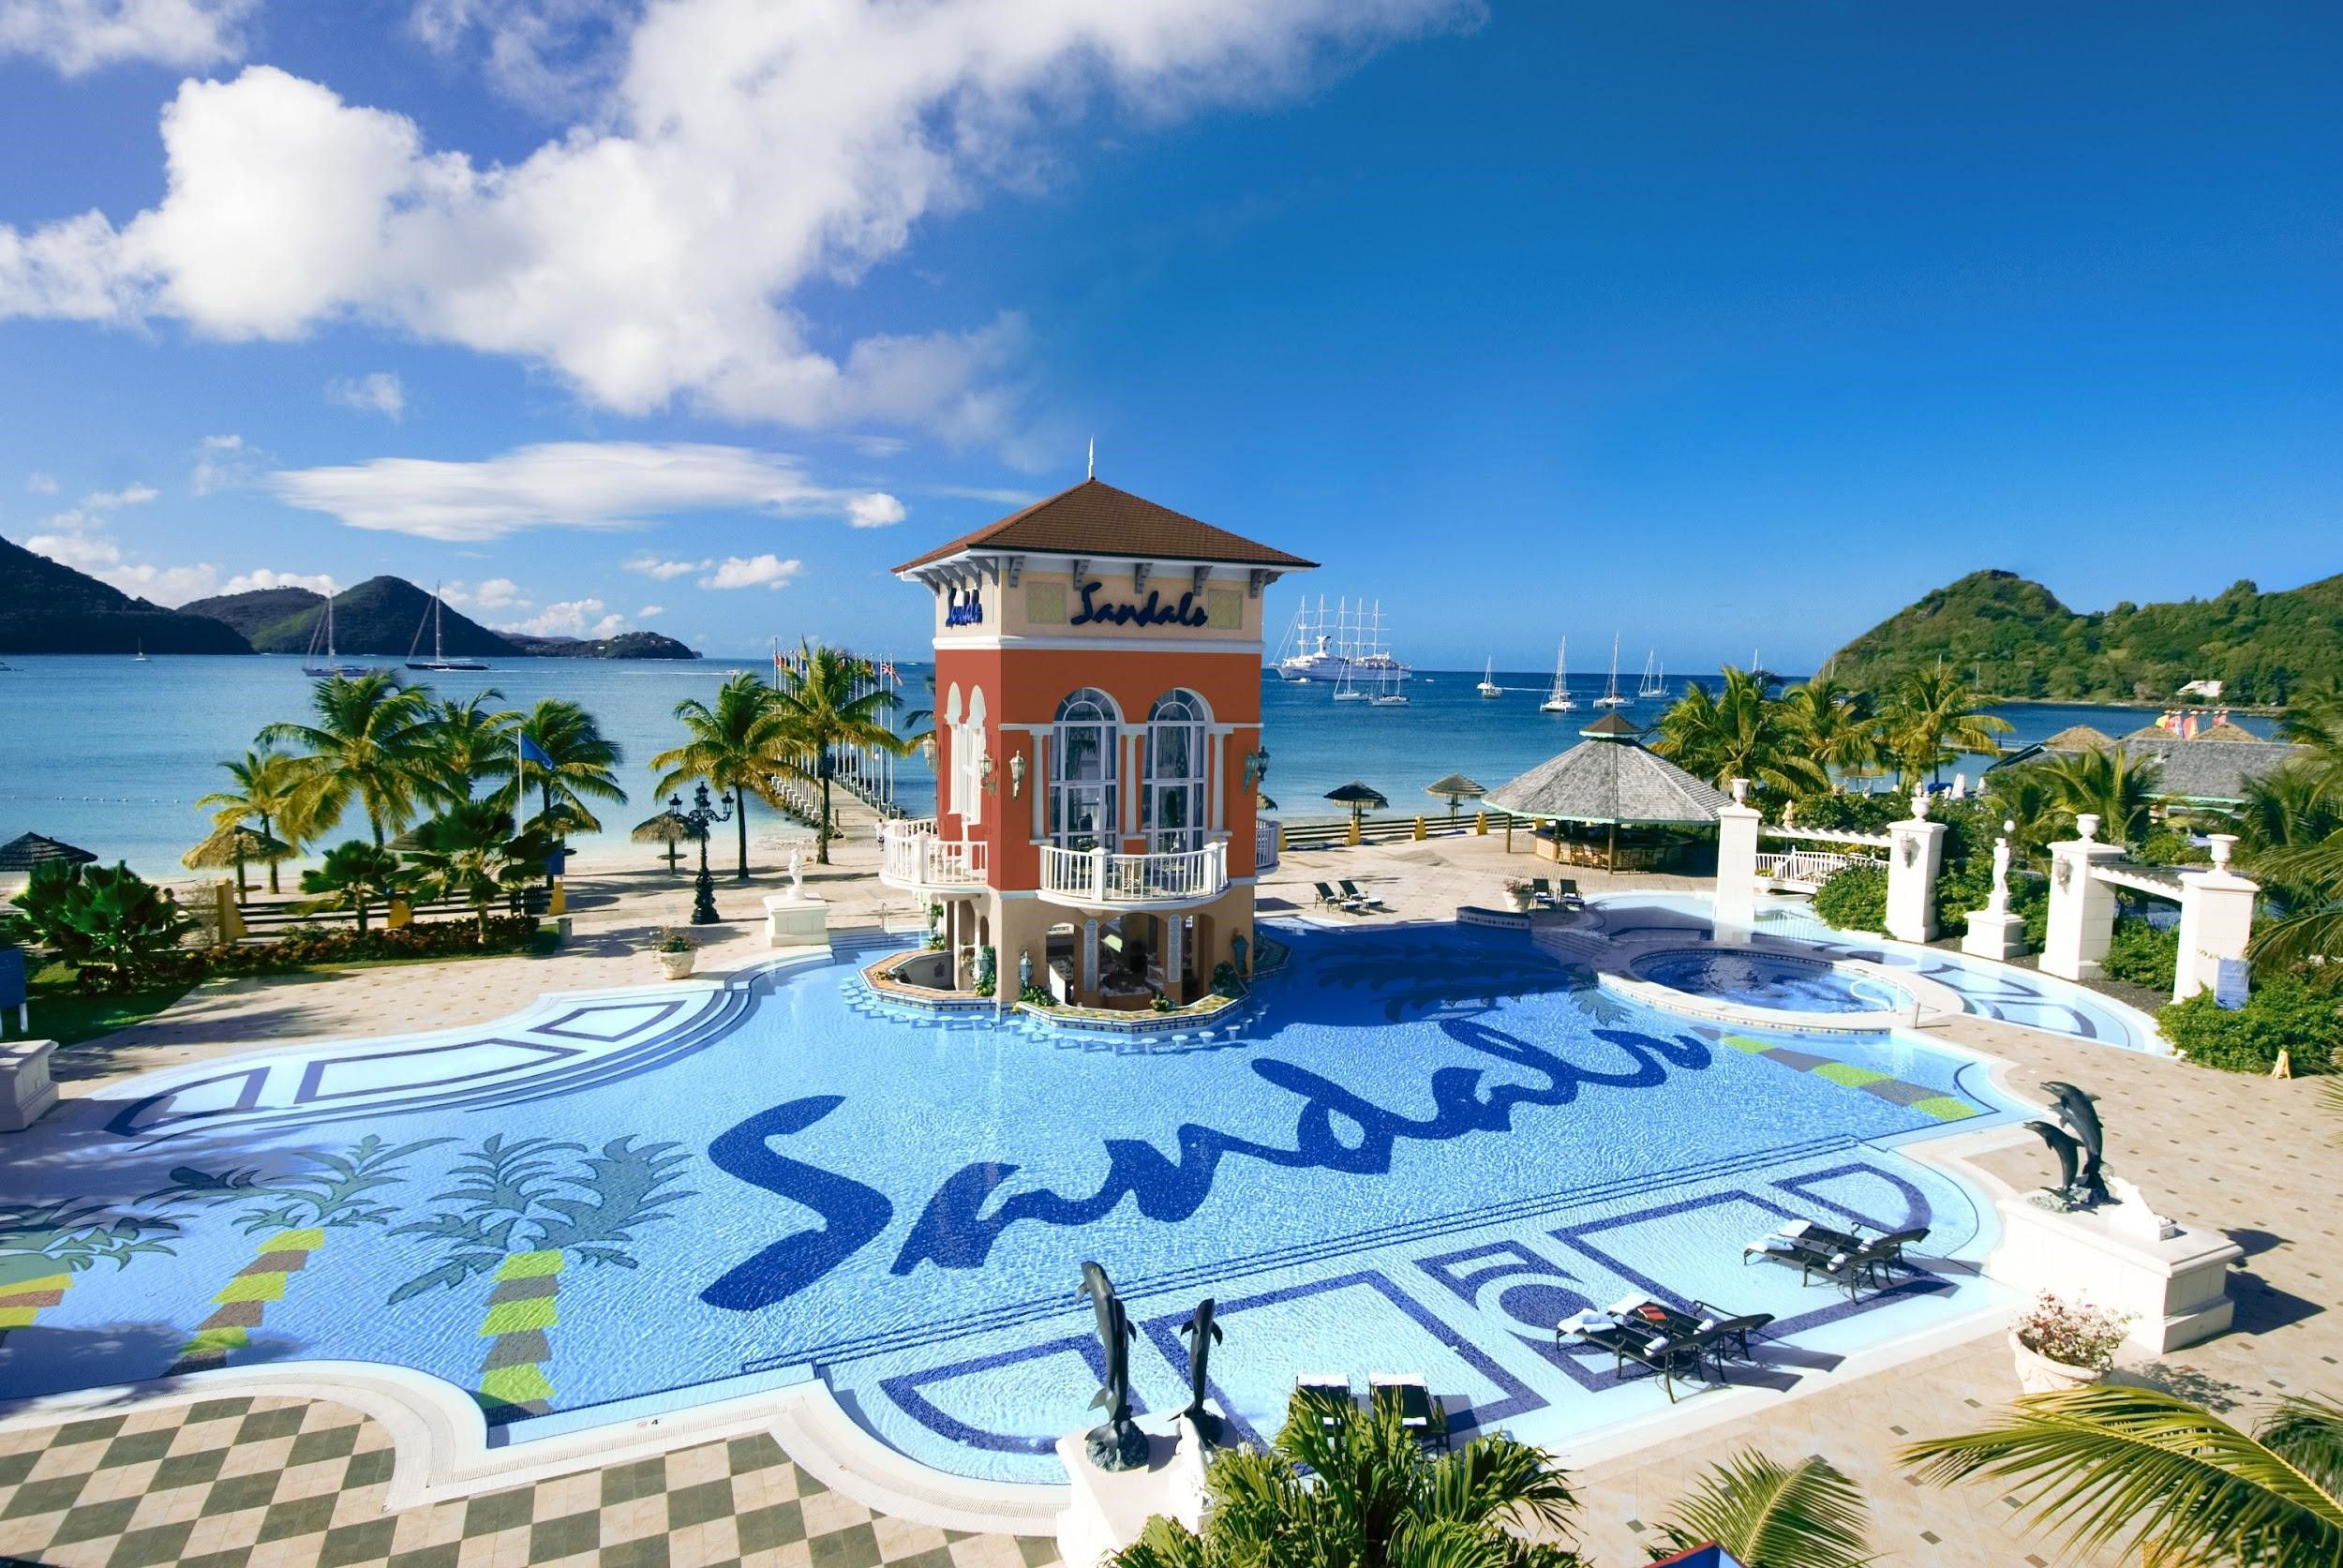 Sandals vacations for singles